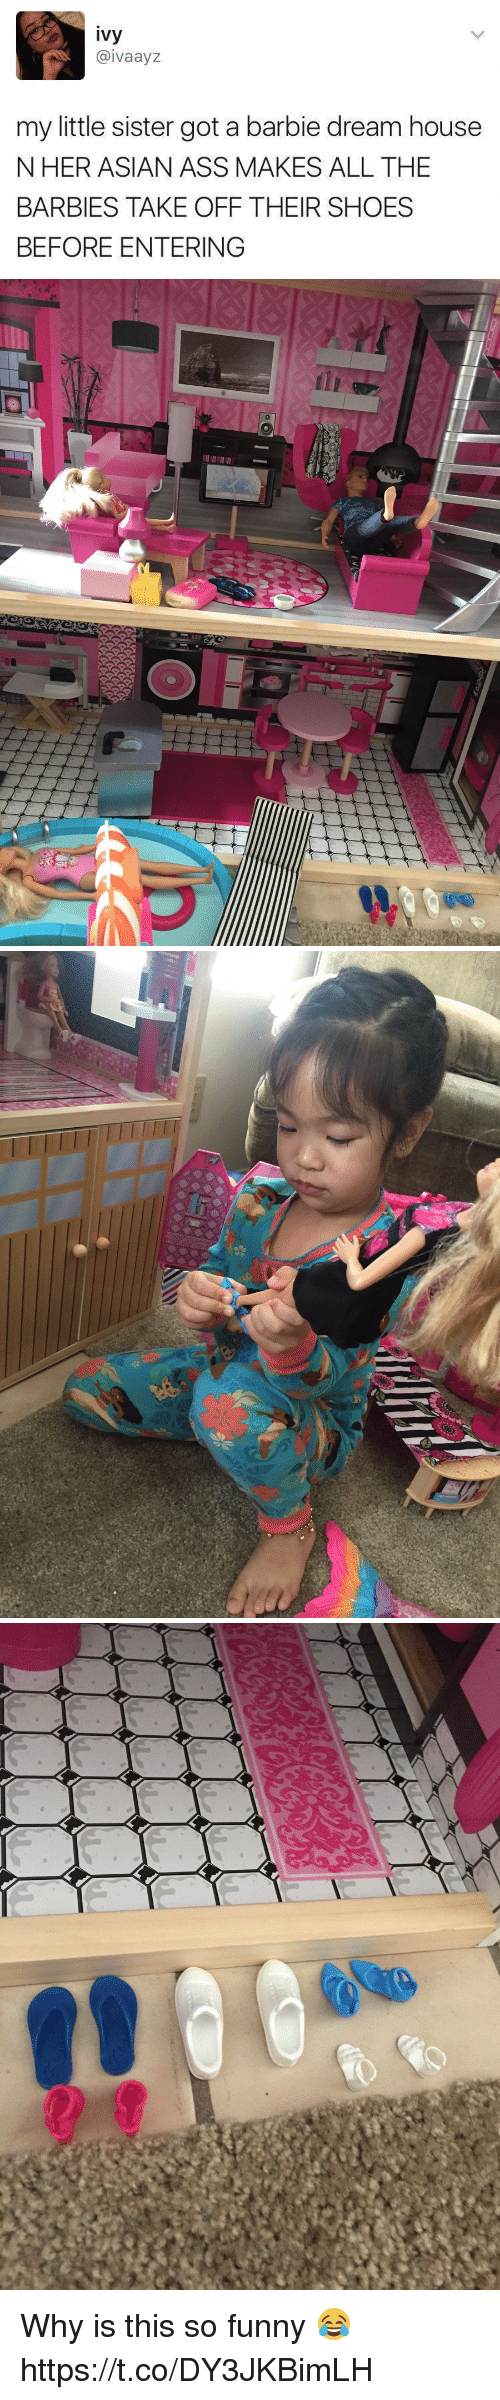 Asian, Ass, and Barbie: ivy  @ivaayz  my little sister got a barbie dream house  NHER ASIAN ASS MAKES ALL THE  BARBIES TAKE OFF THEIR SHOES  BEFORE ENTERING Why is this so funny 😂 https://t.co/DY3JKBimLH